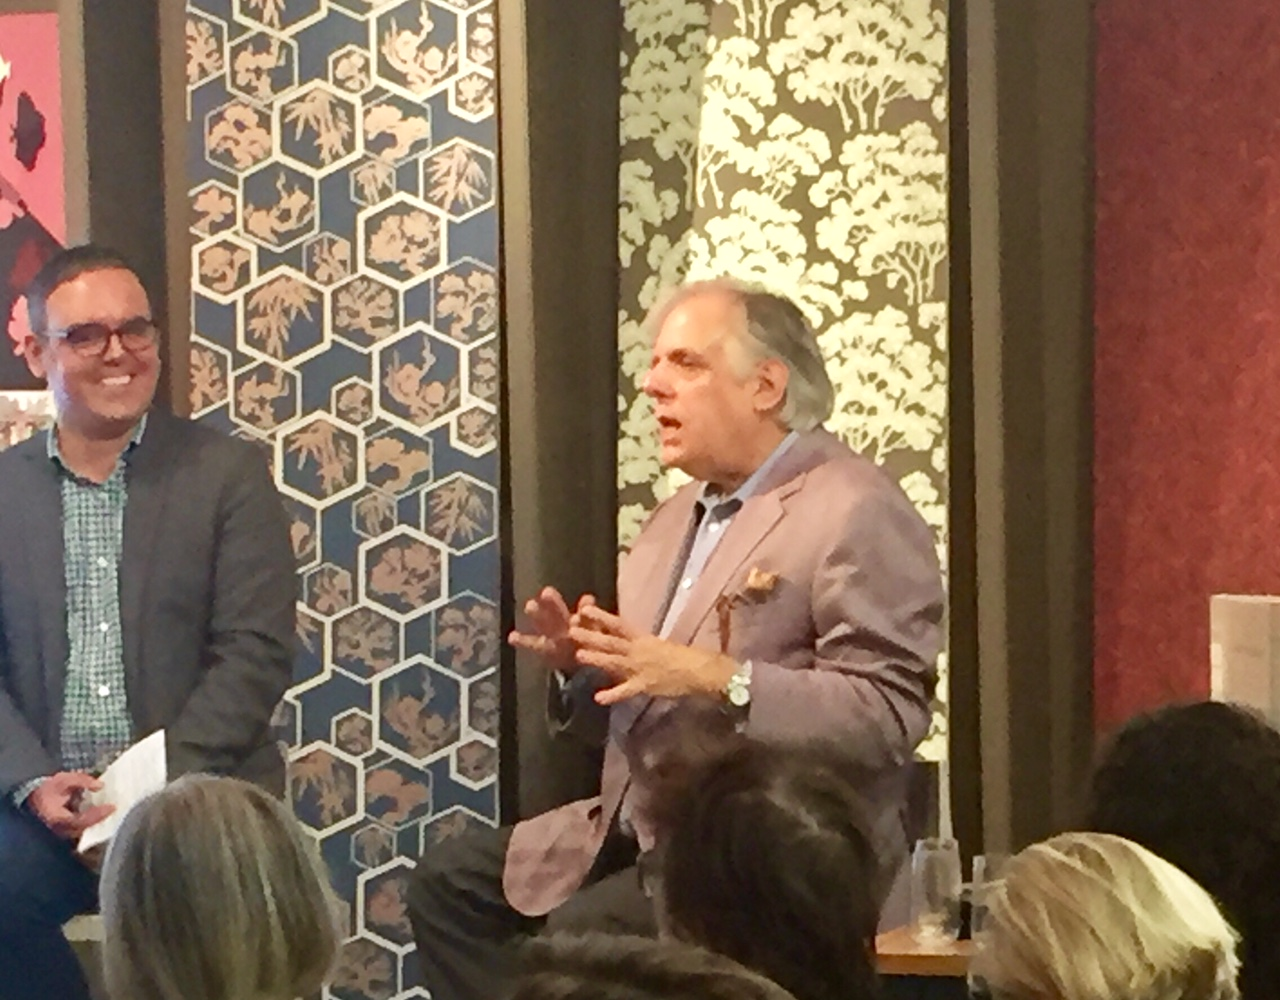 Dennis Sarlo and Mark Epstein discussing high-end design